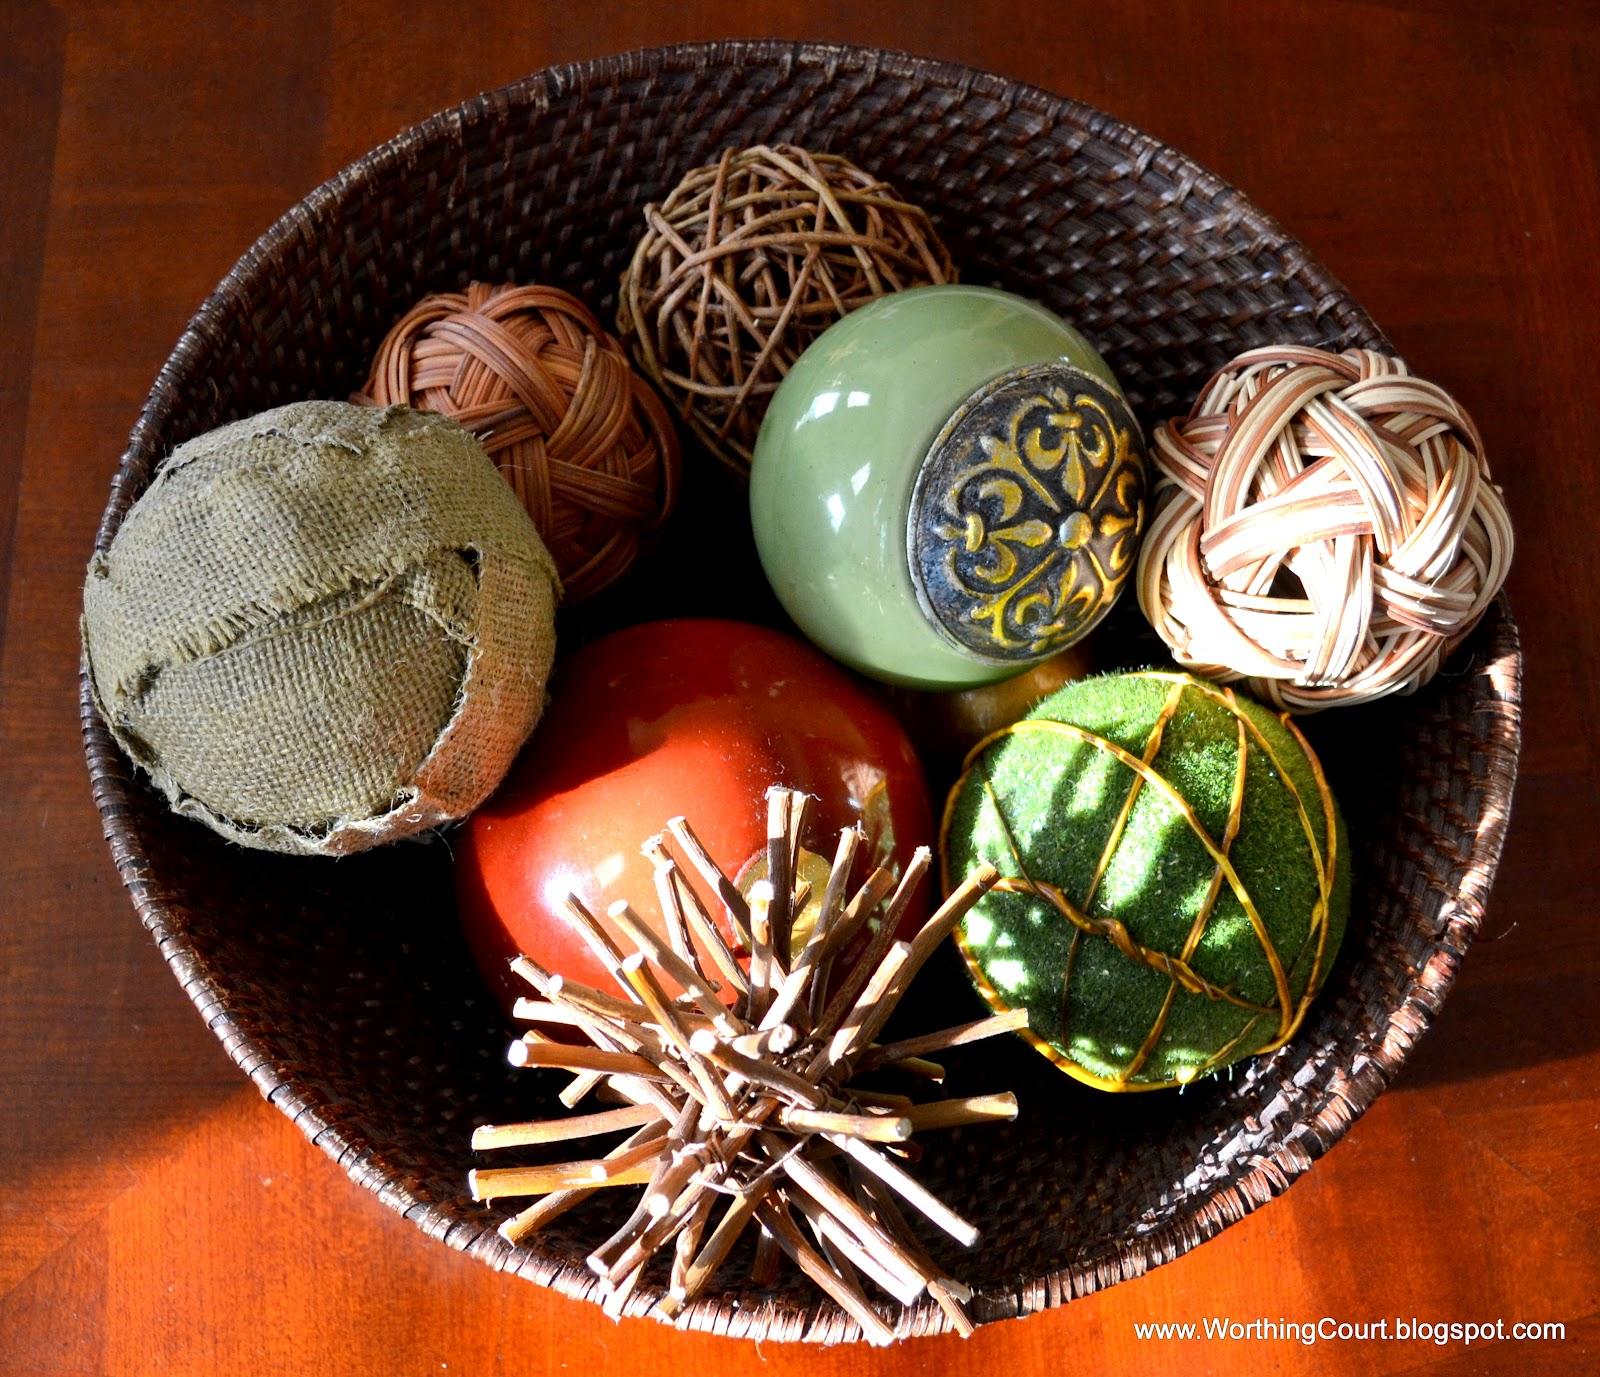 Inexpensive Decorative Orbs with many design on brown vessel for table accessories ideas